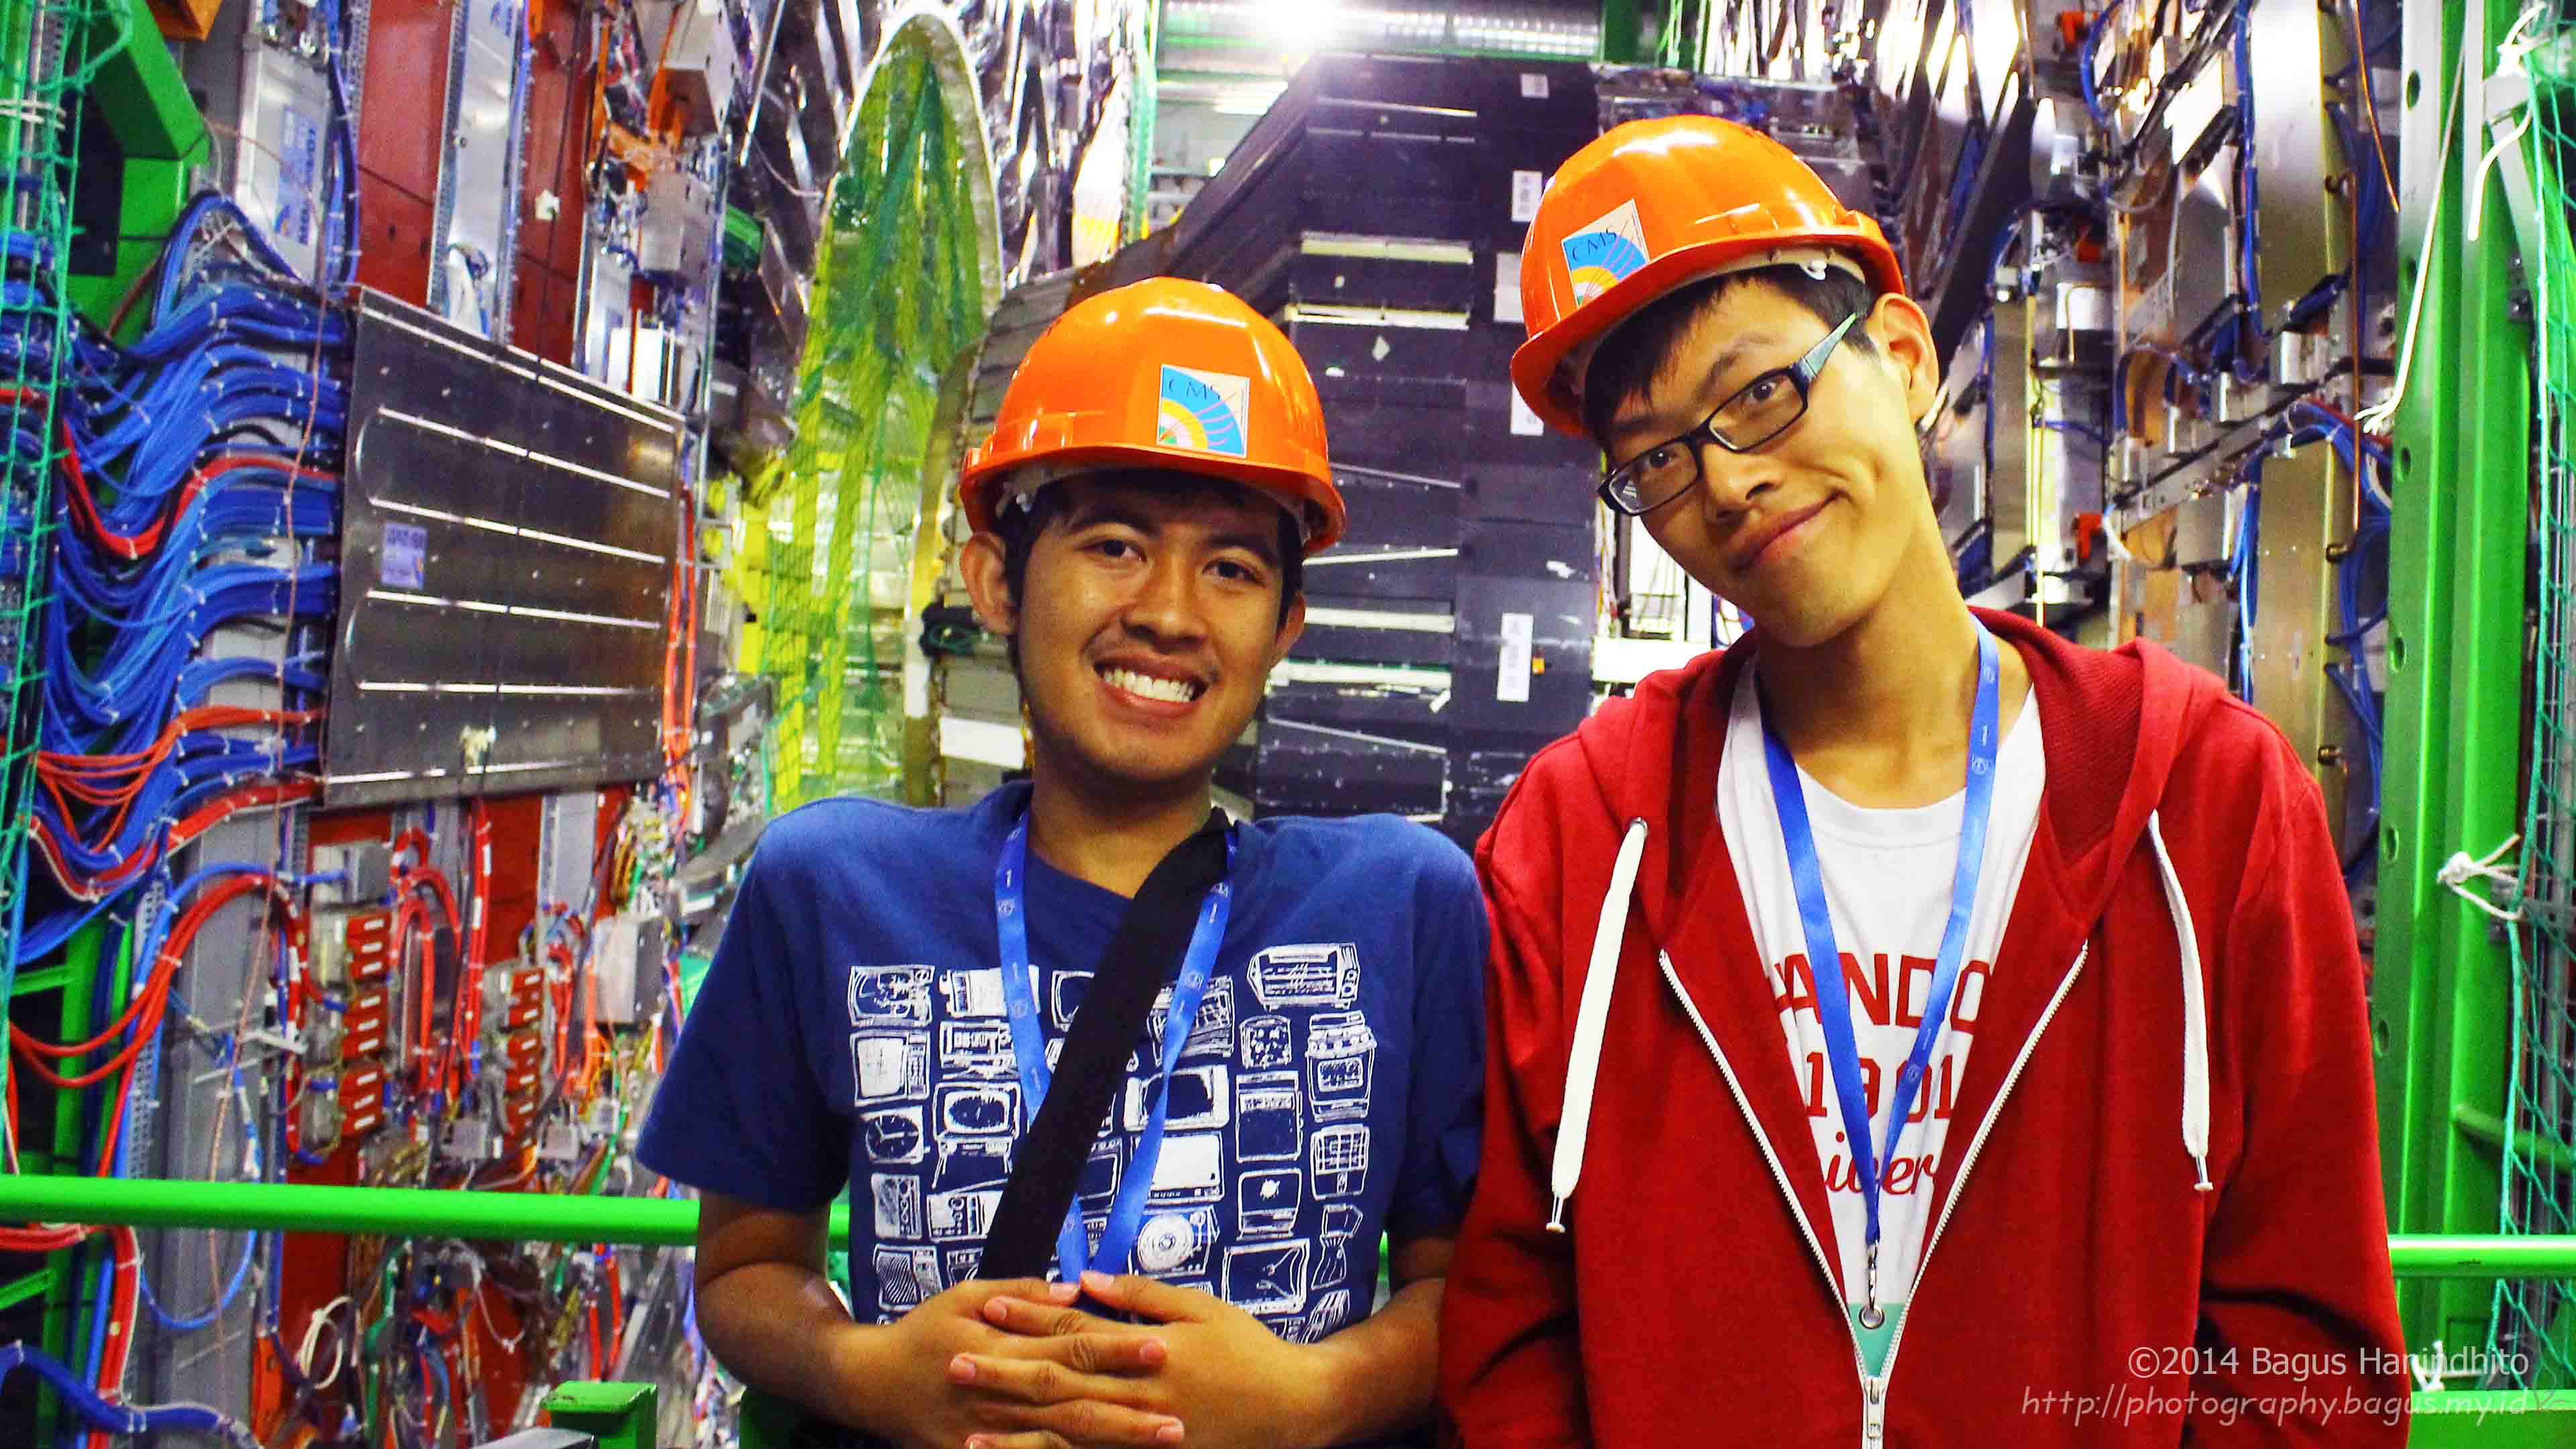 I and my friend were photographed in front of the inner core of CMS detector.